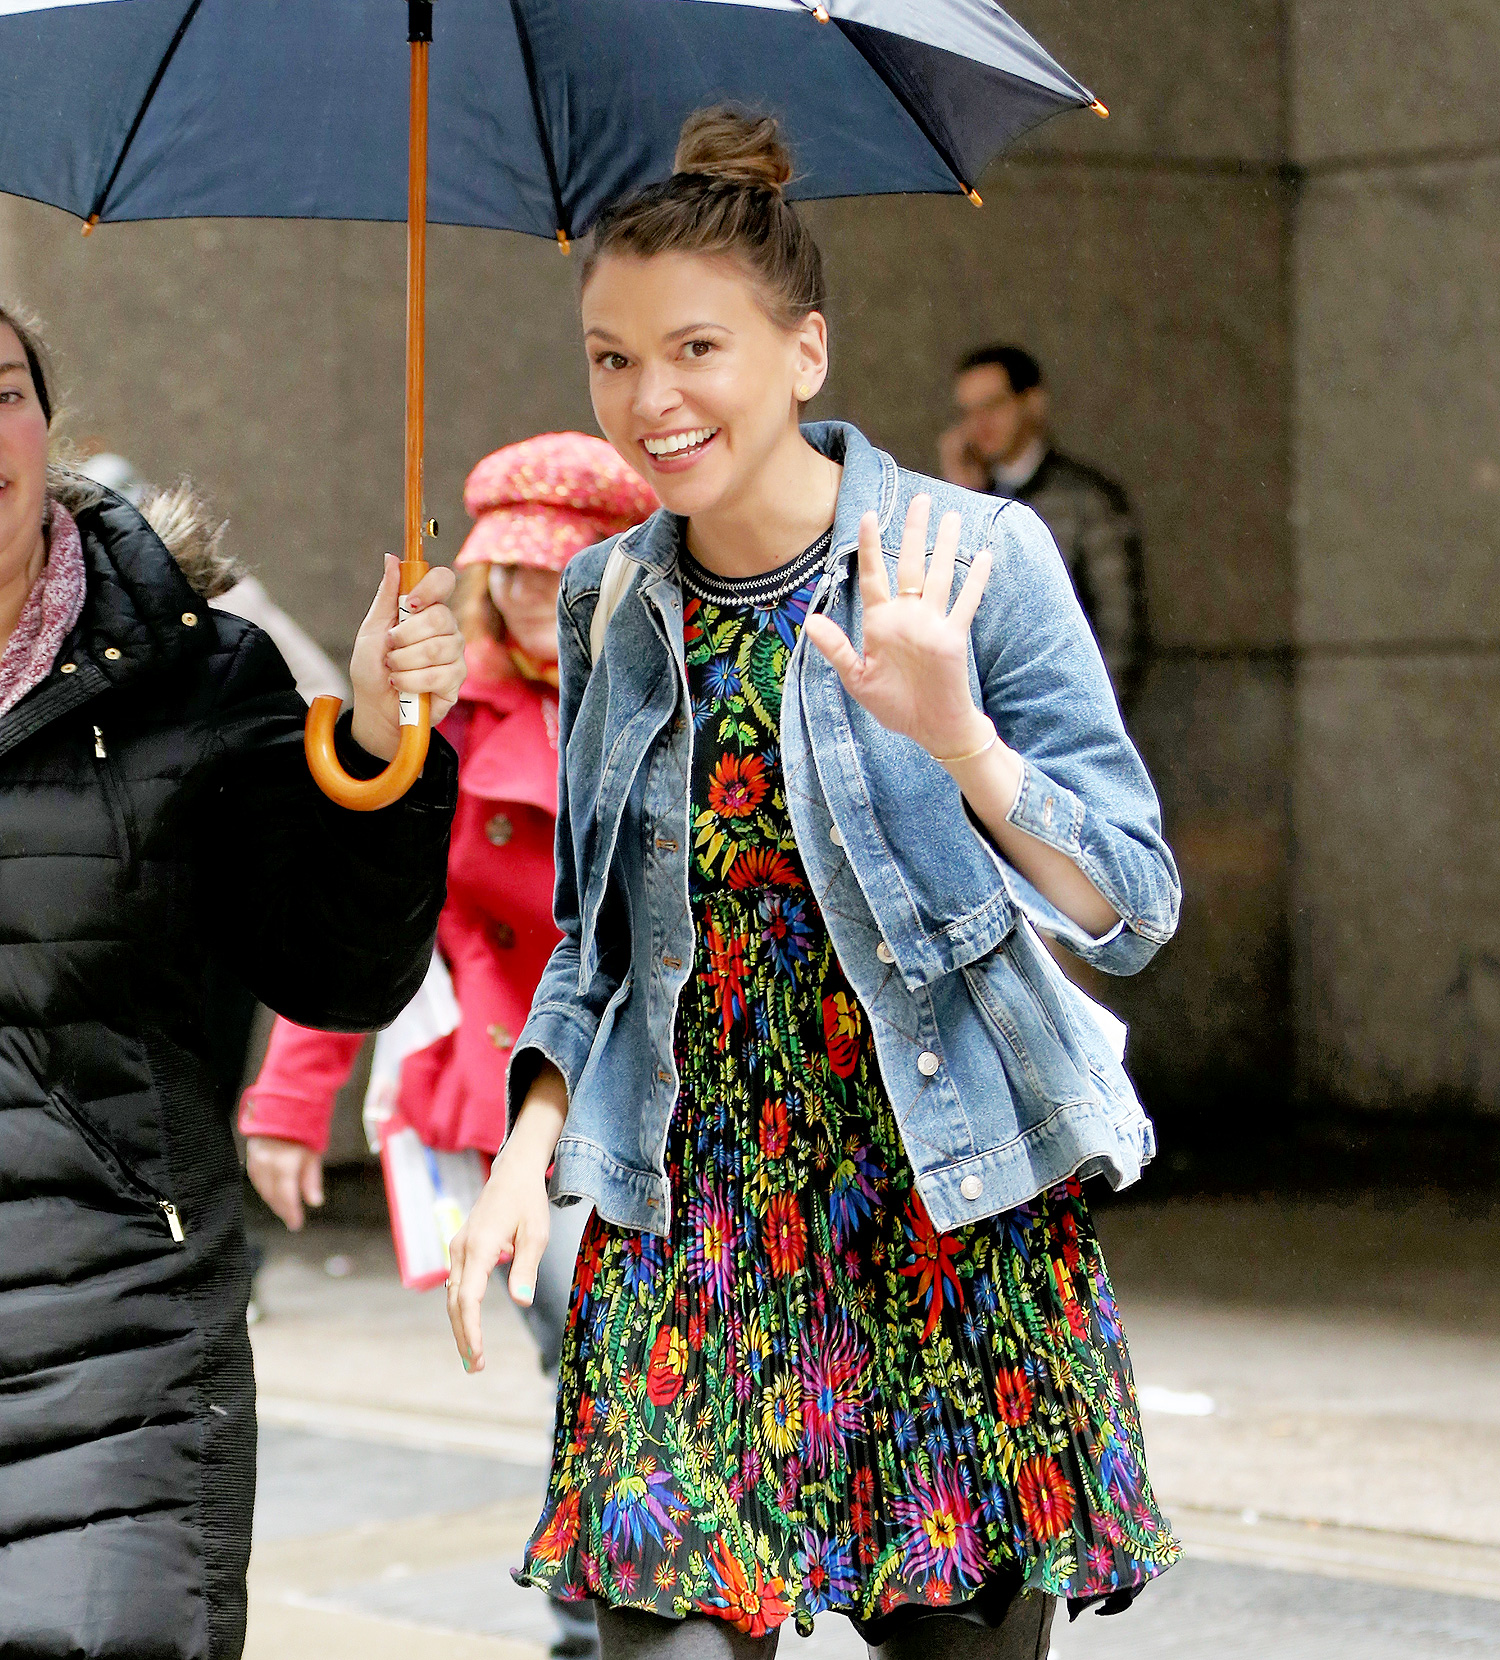 Actress Sutton Foster walks under an umbrella to the set of 'Younger' filming at Hotel Pennsylvania in New York City